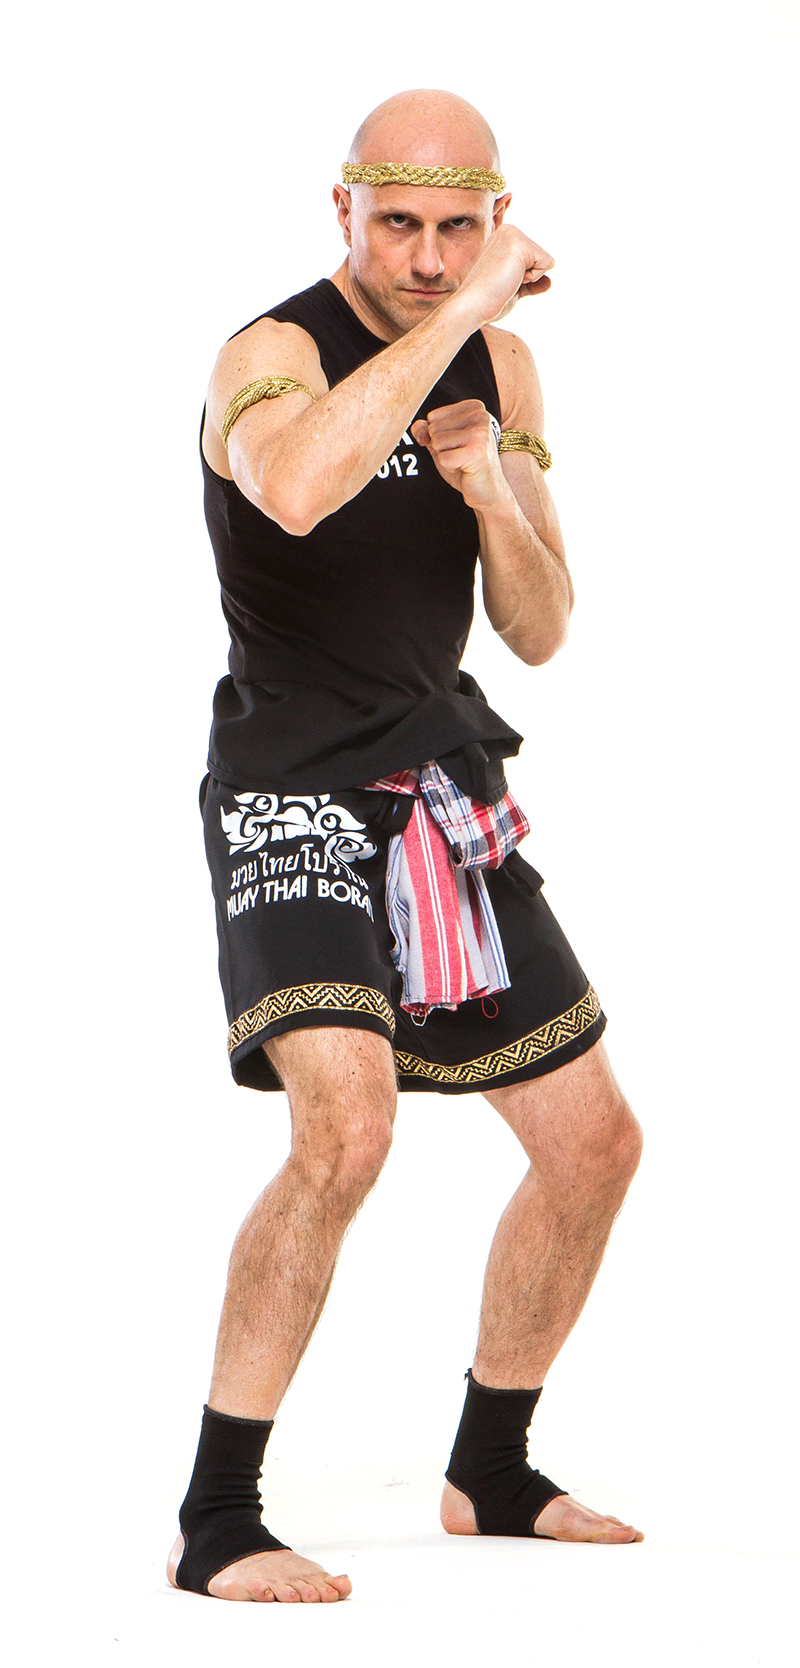 1 Jot Muay Chaiya Traditional Muay Thai fighting stances: the Art's bedrock